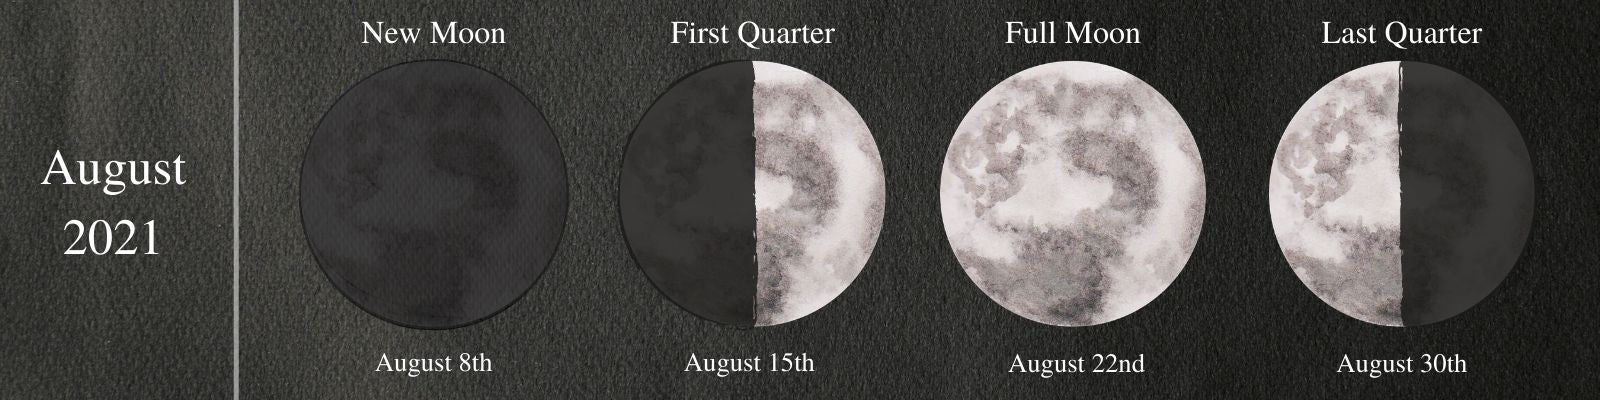 Moon Phases July 2021